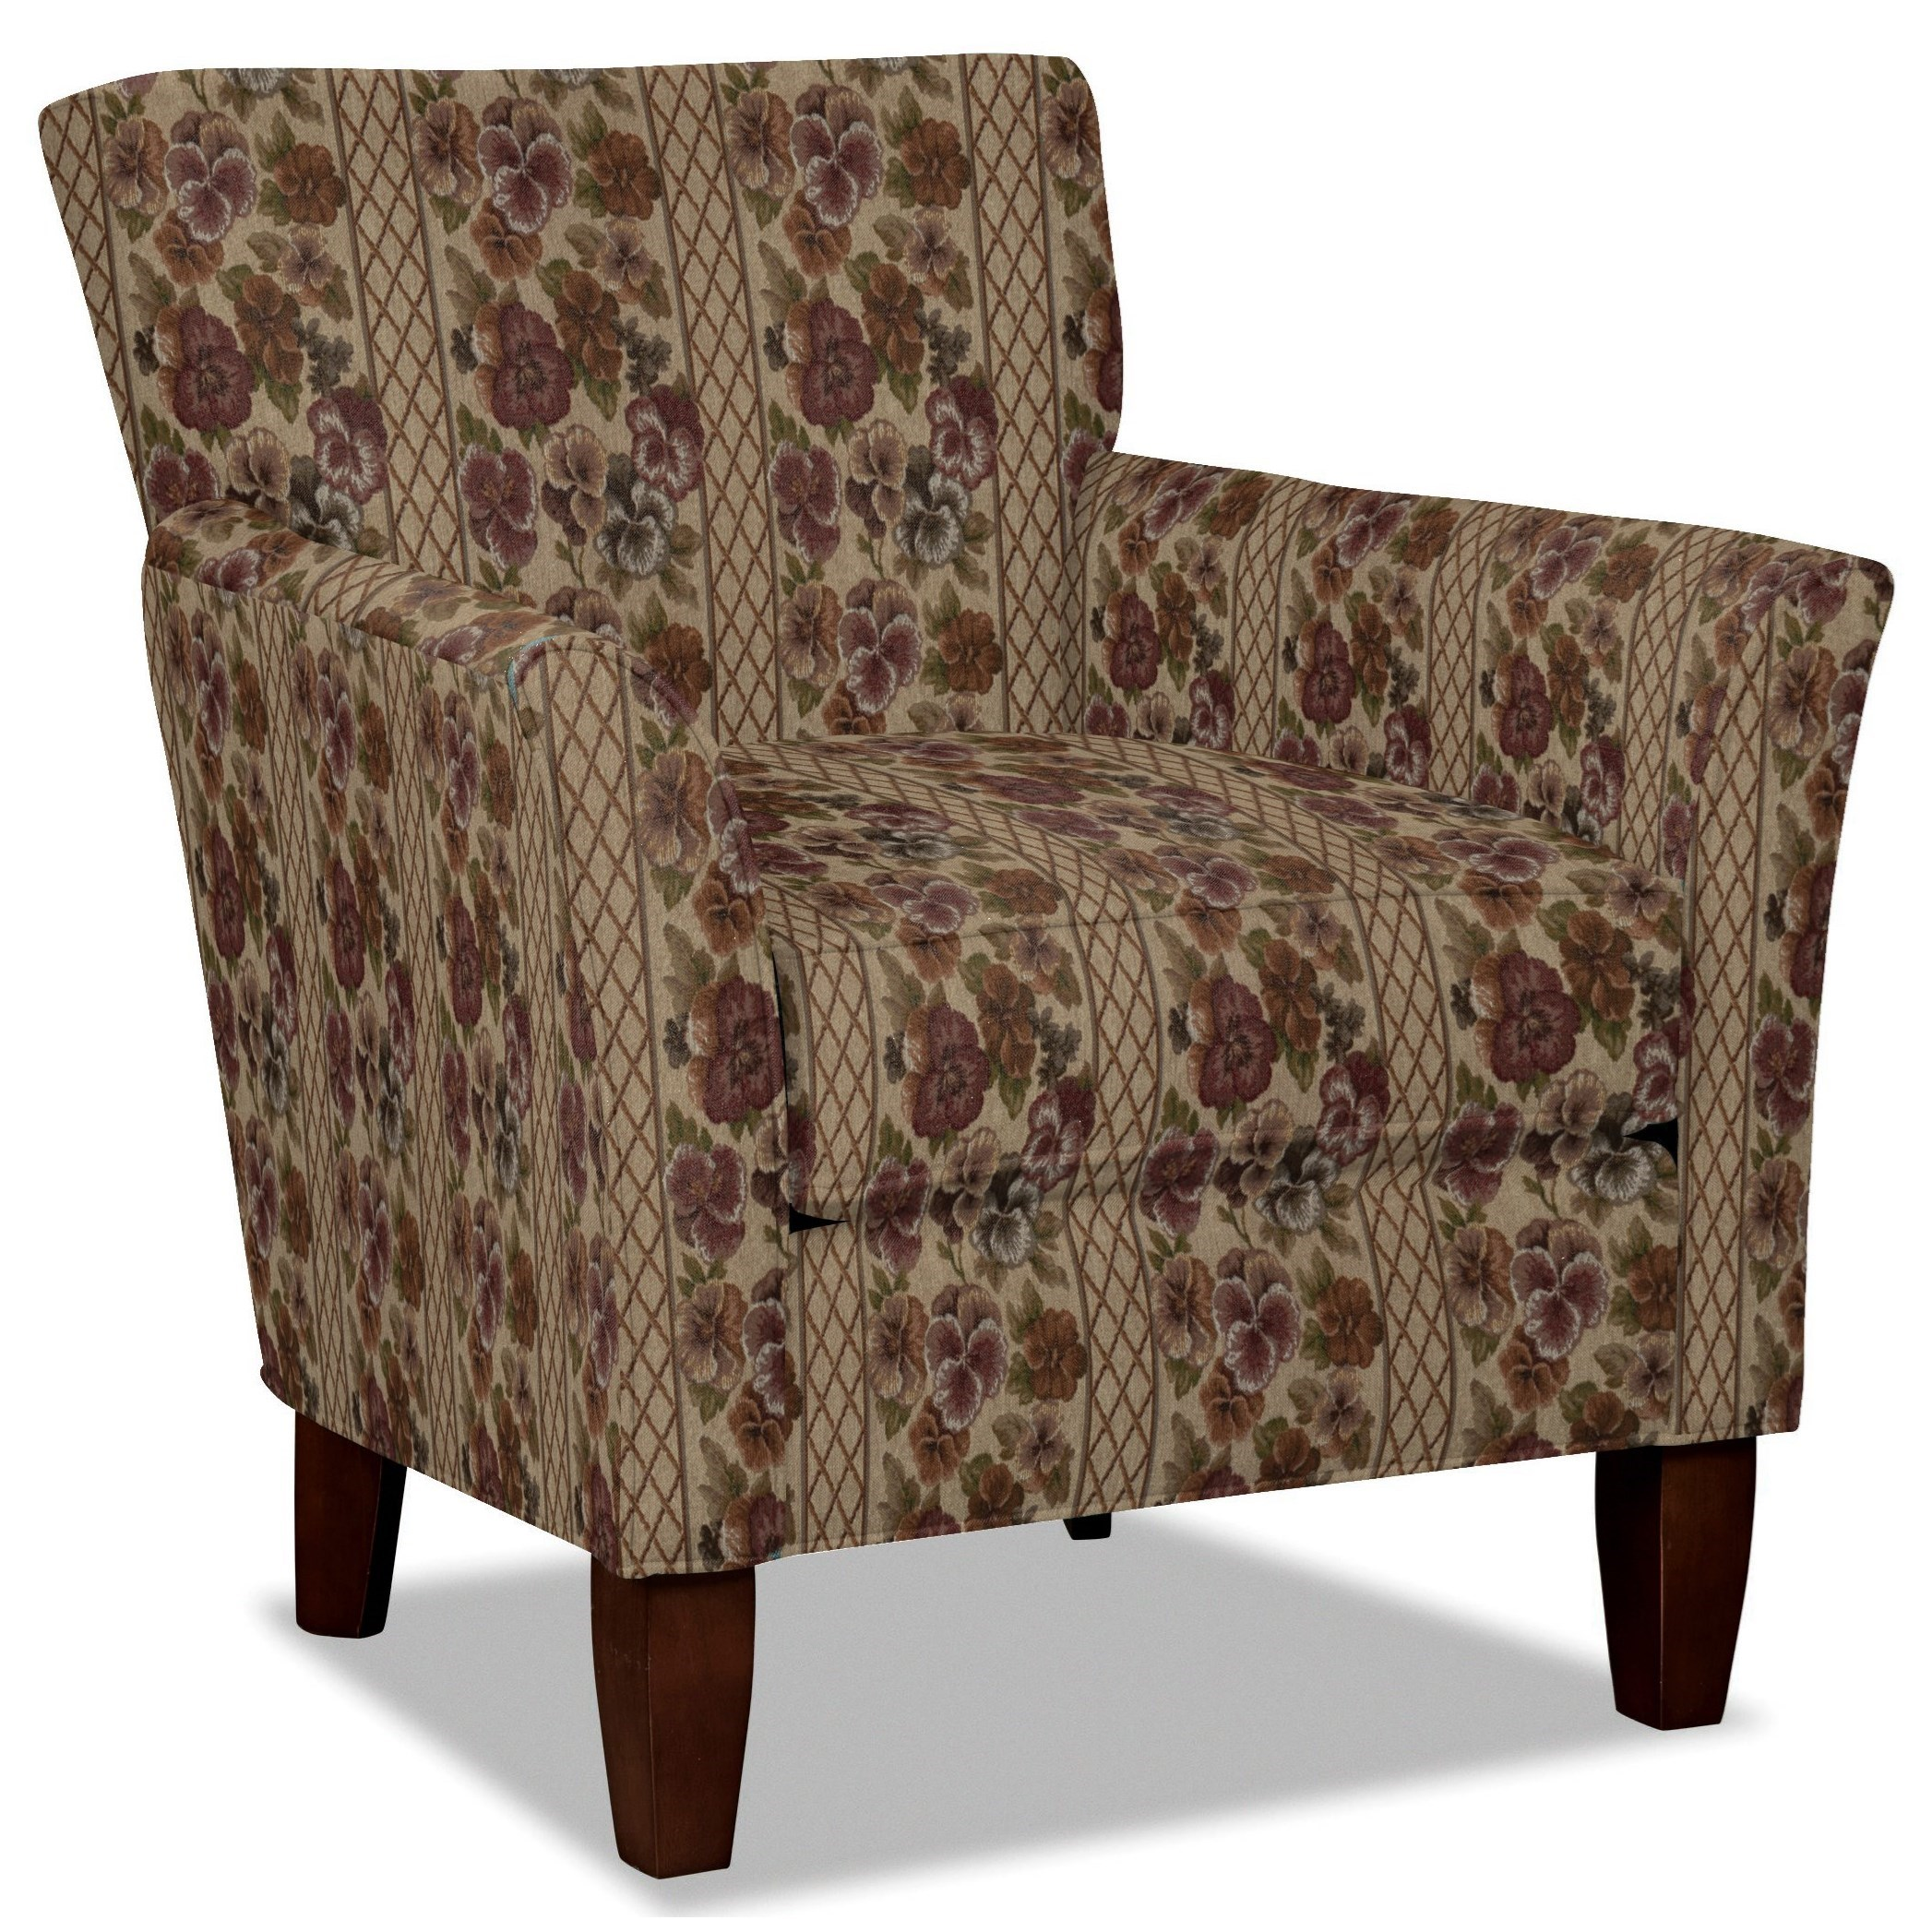 Craftmaster 060110 Accent Chair - Item Number: 060110-DUNKIRK-09